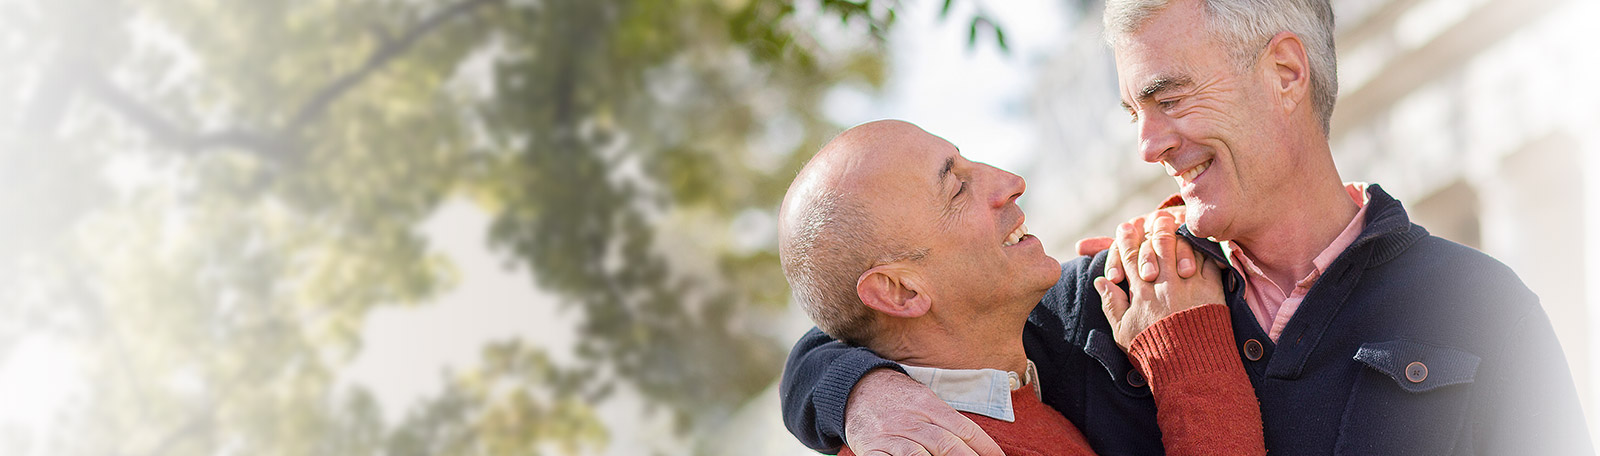 Gay Senior Dating with SilverSingles: Finding a Real